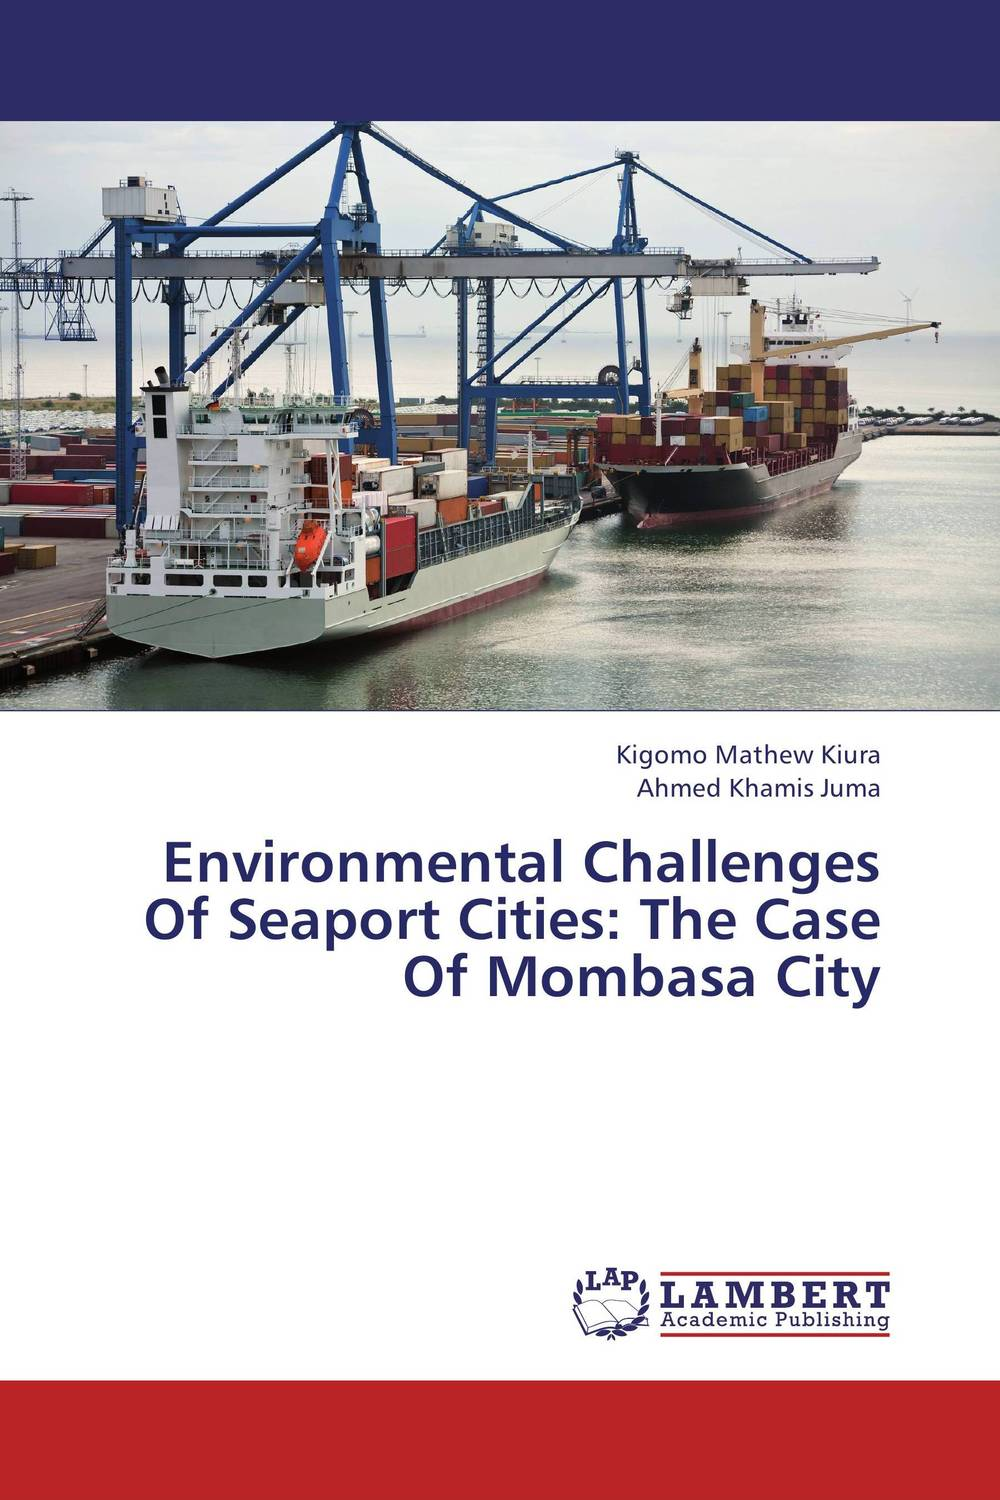 Environmental Challenges Of Seaport Cities: The Case Of Mombasa City development of ghg mitigation options for alberta's energy sector